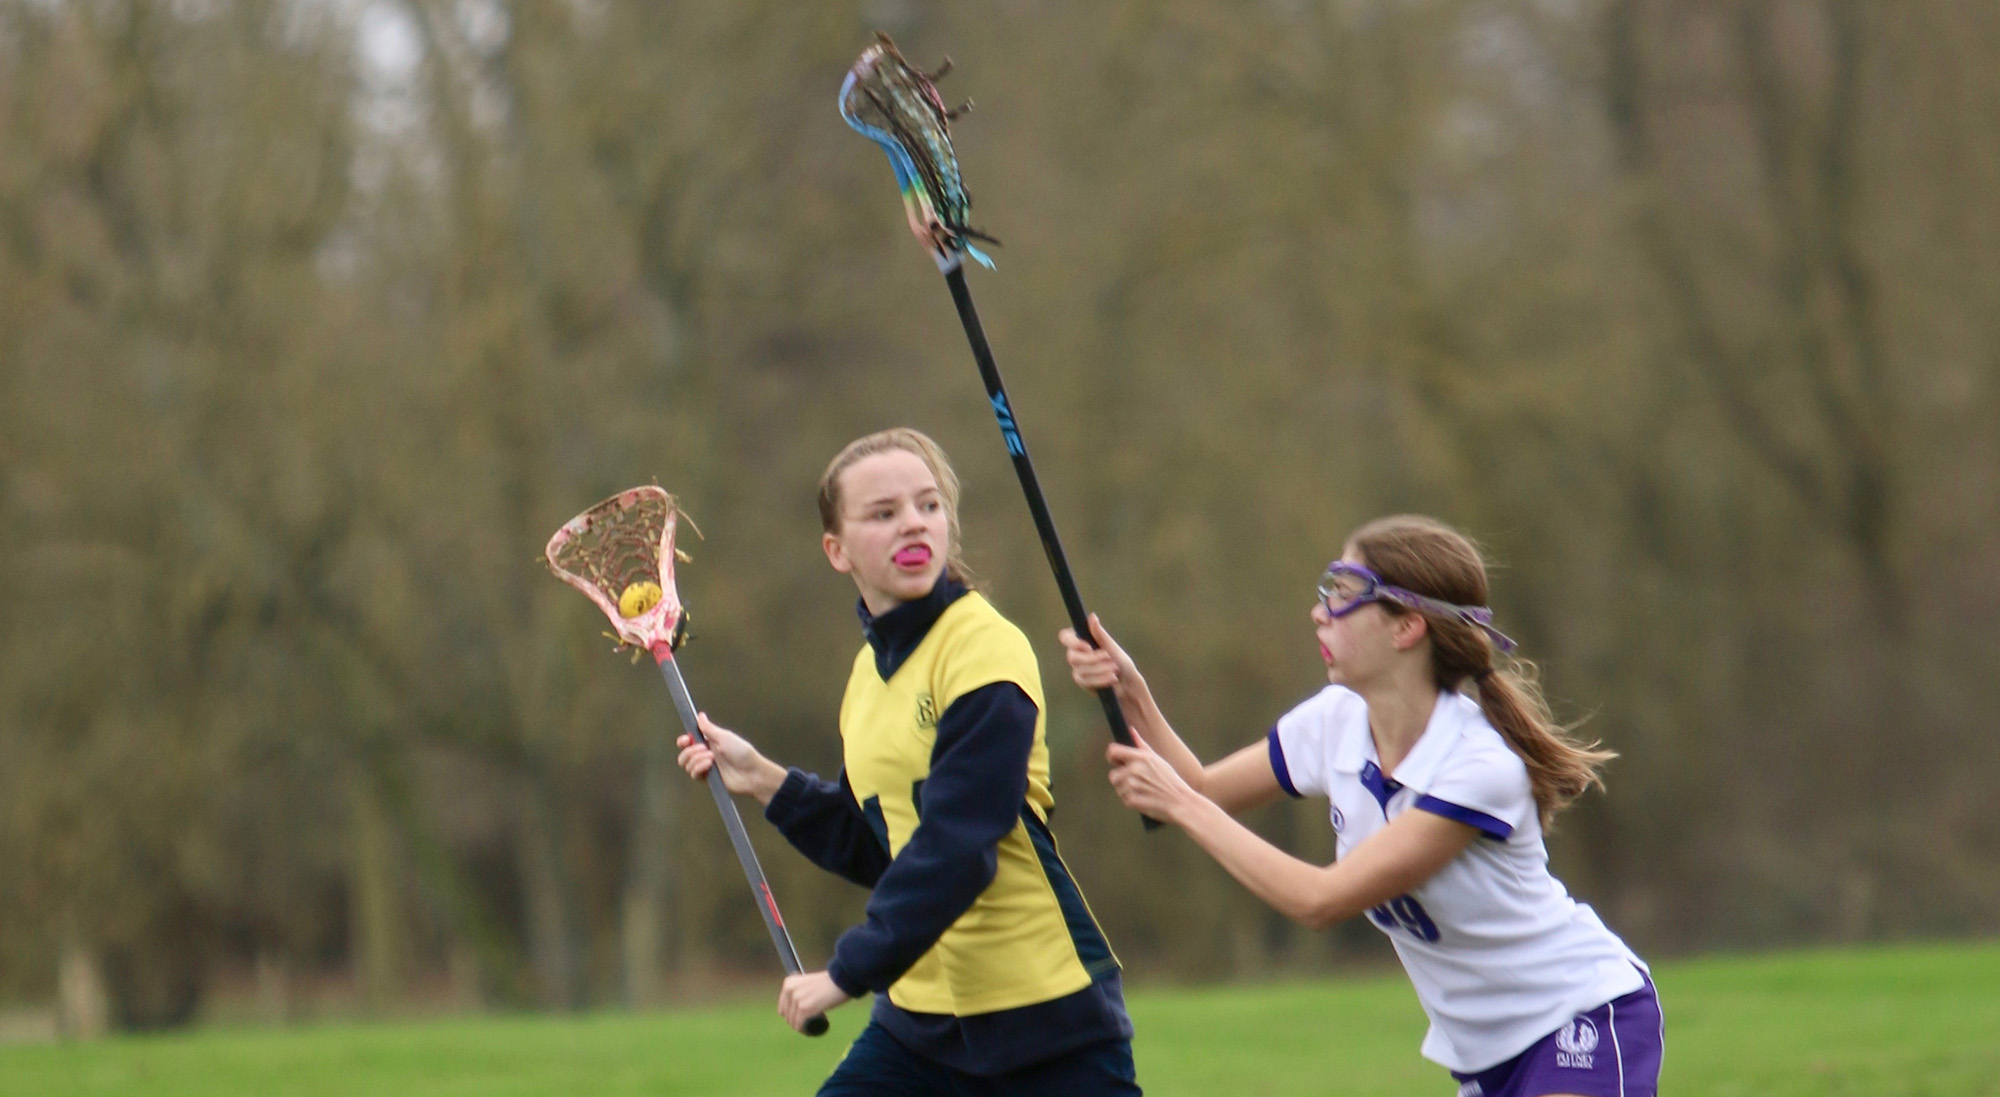 Girls playing Lacrosse